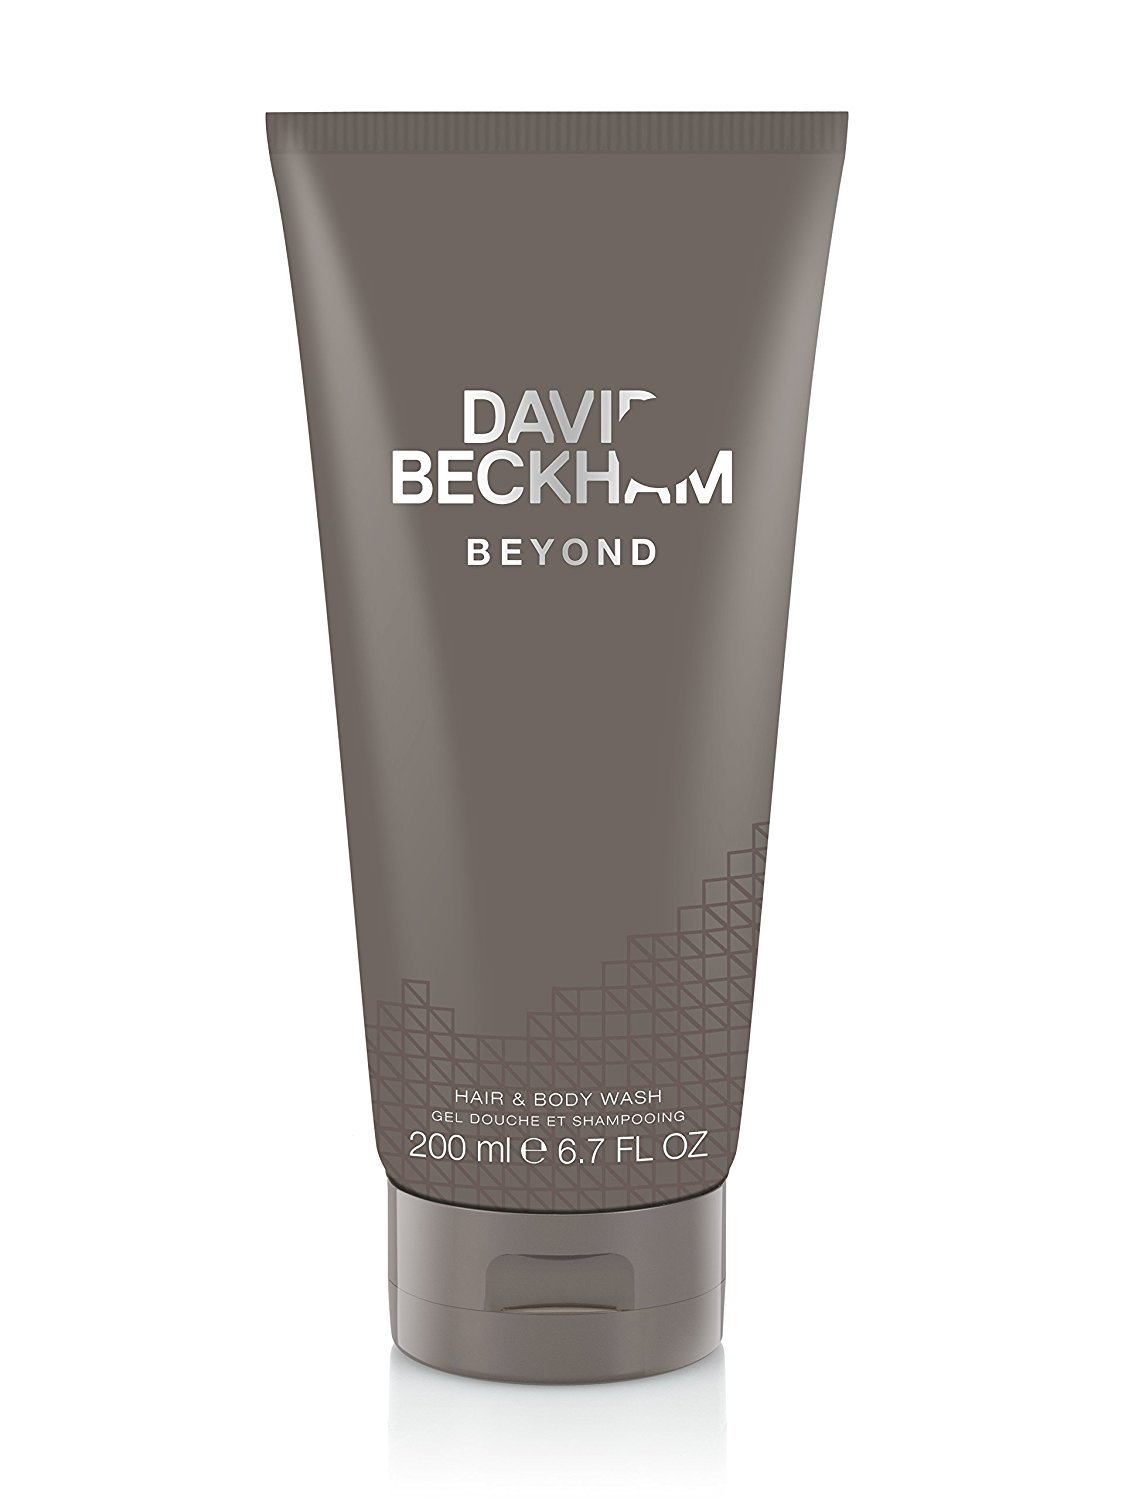 Dušo želė David Beckham Beyond vyrams 200 ml